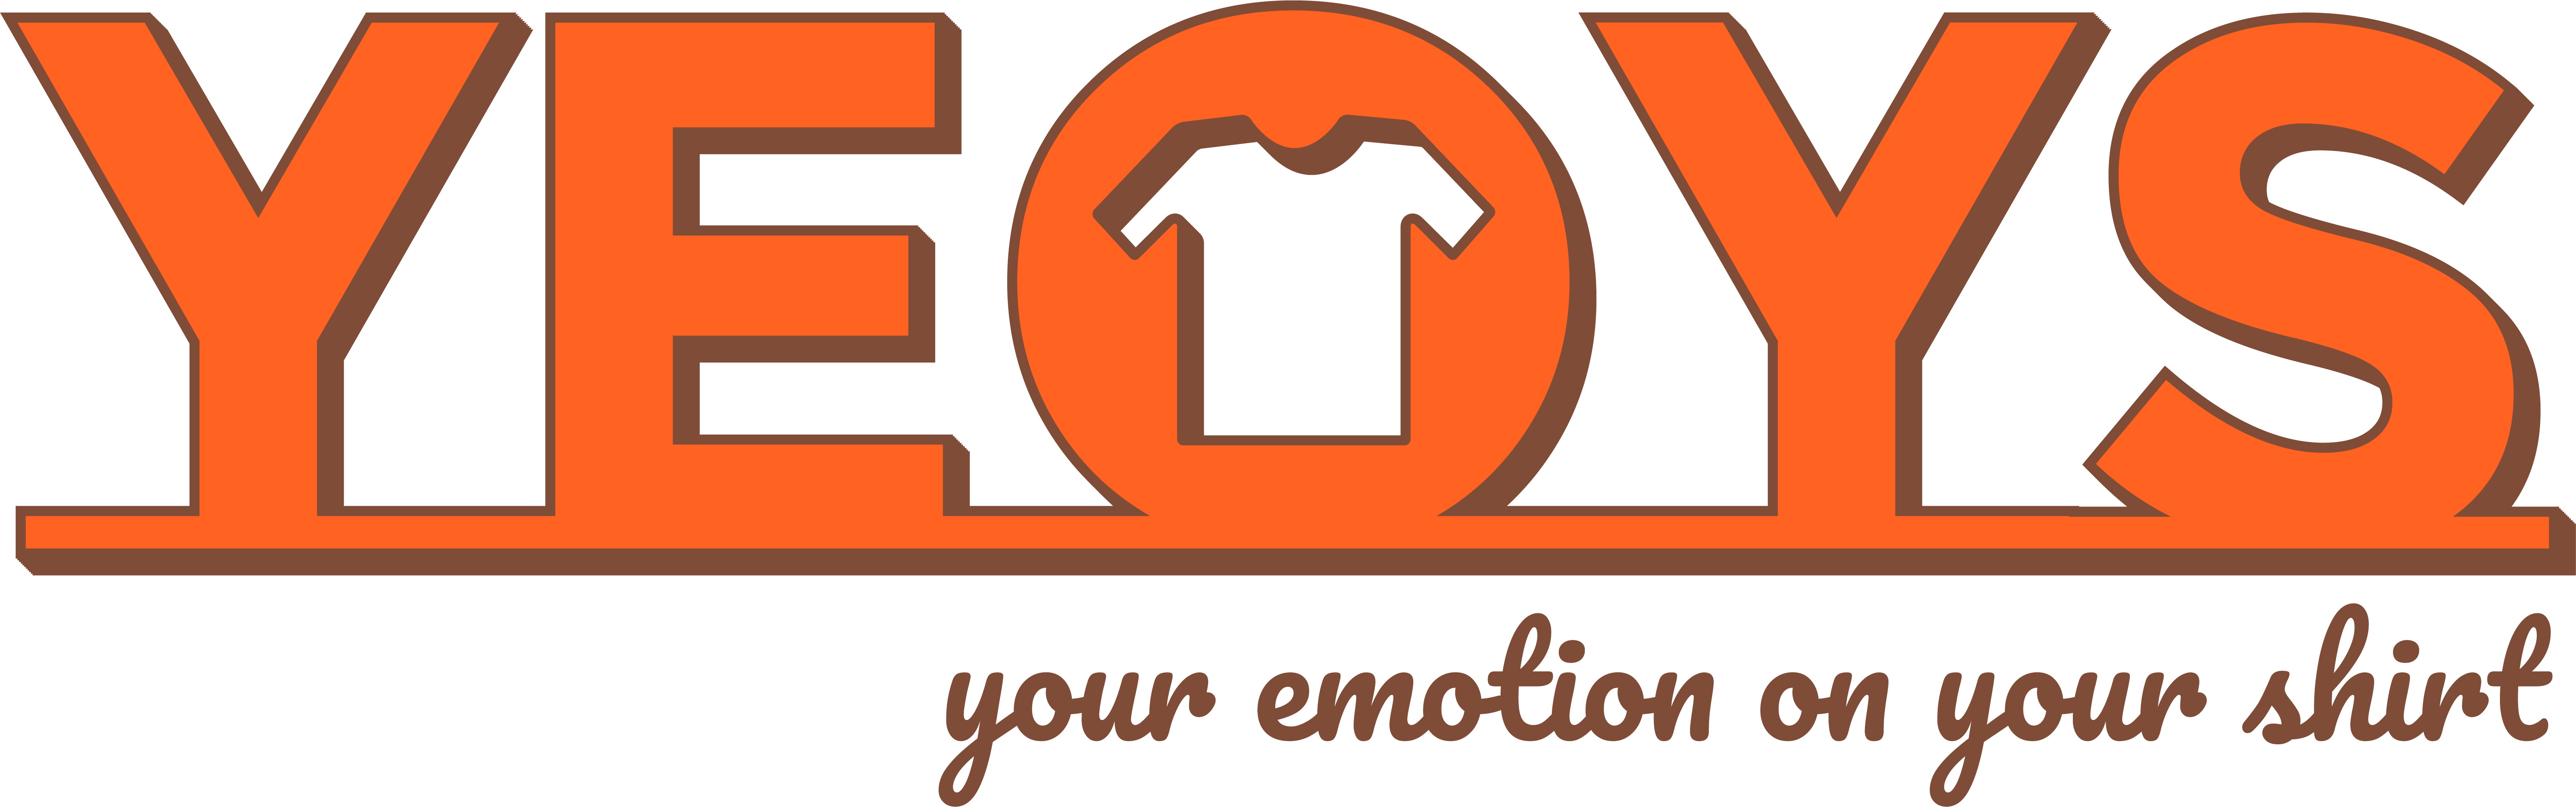 yeoys logo